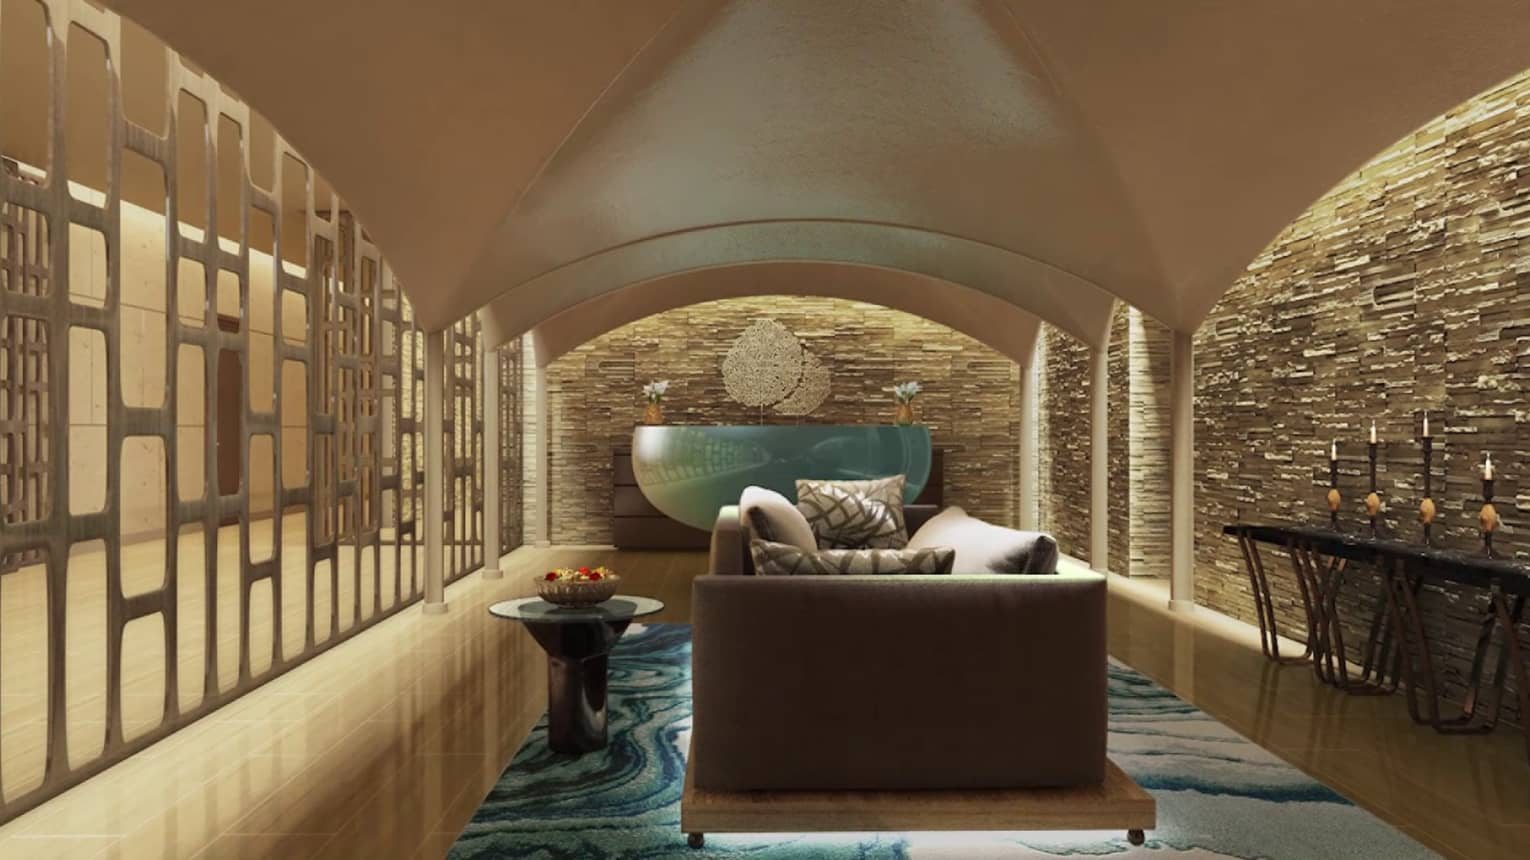 Infuse Spa modern lobby. sofa between accent and stone tile walls